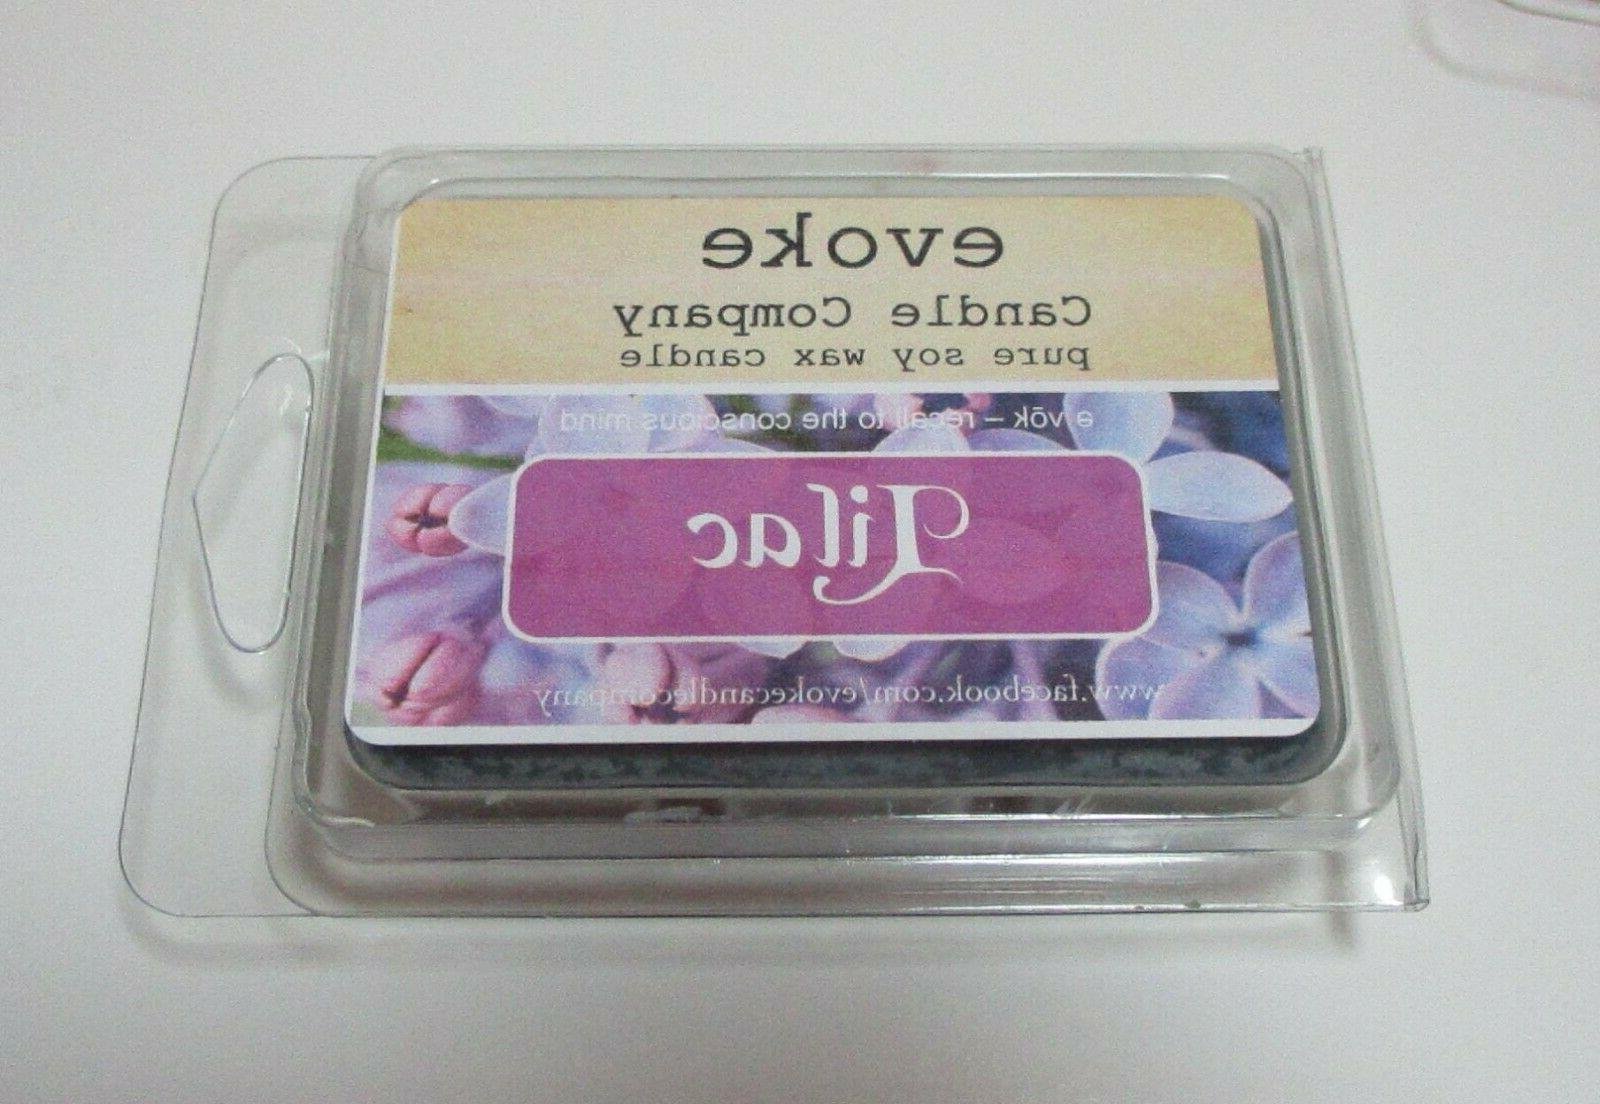 Highly Pure Wax Melts 6 clamshell Fruit & Scents